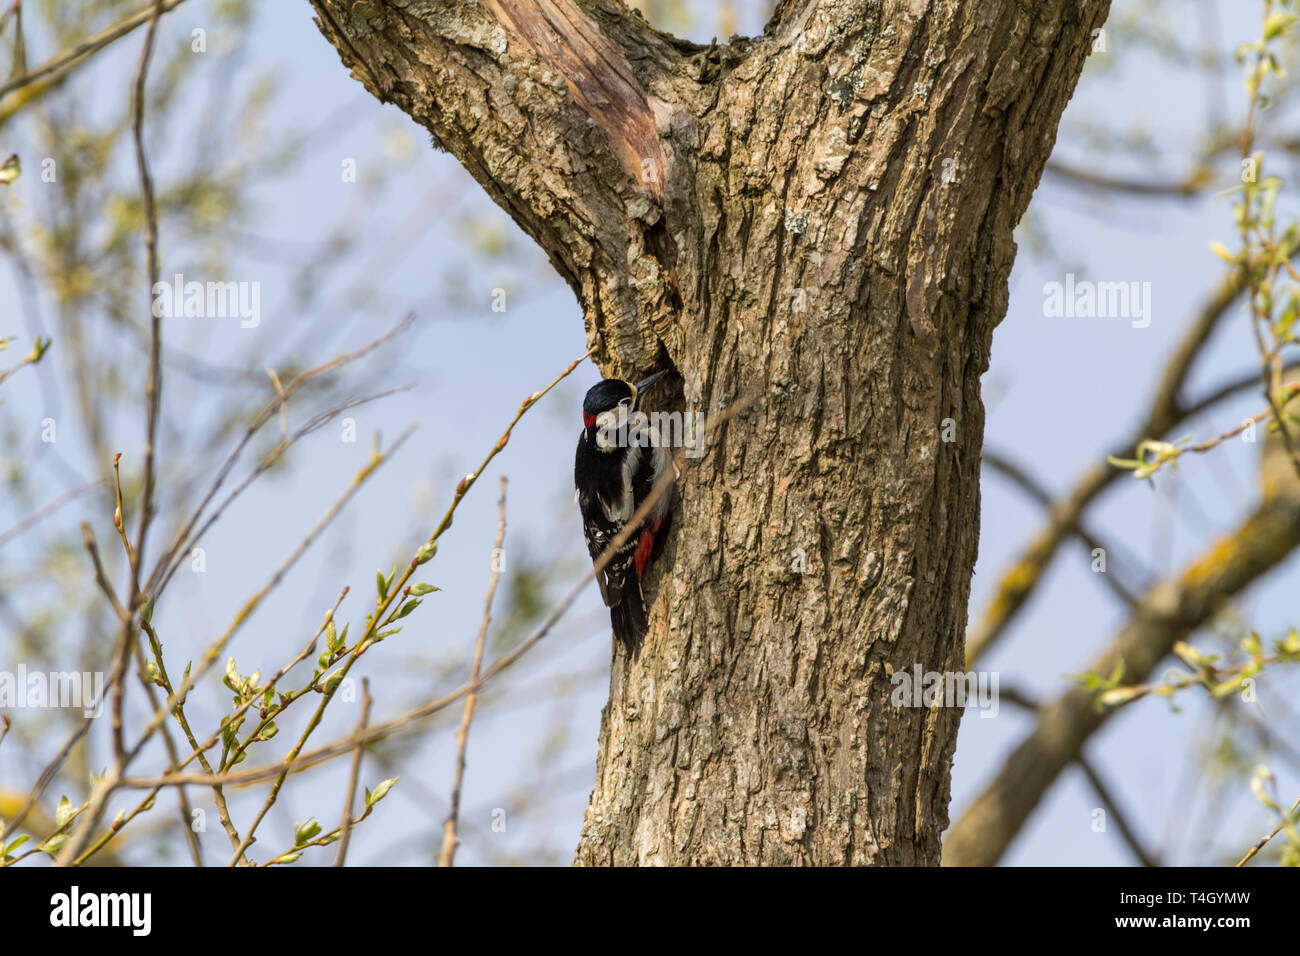 Great spotted woodpecker (Dendrocopos major) inspecting nest hole in  tree. Male crimson nape black and white plumage and red crimson under short tail Stock Photo